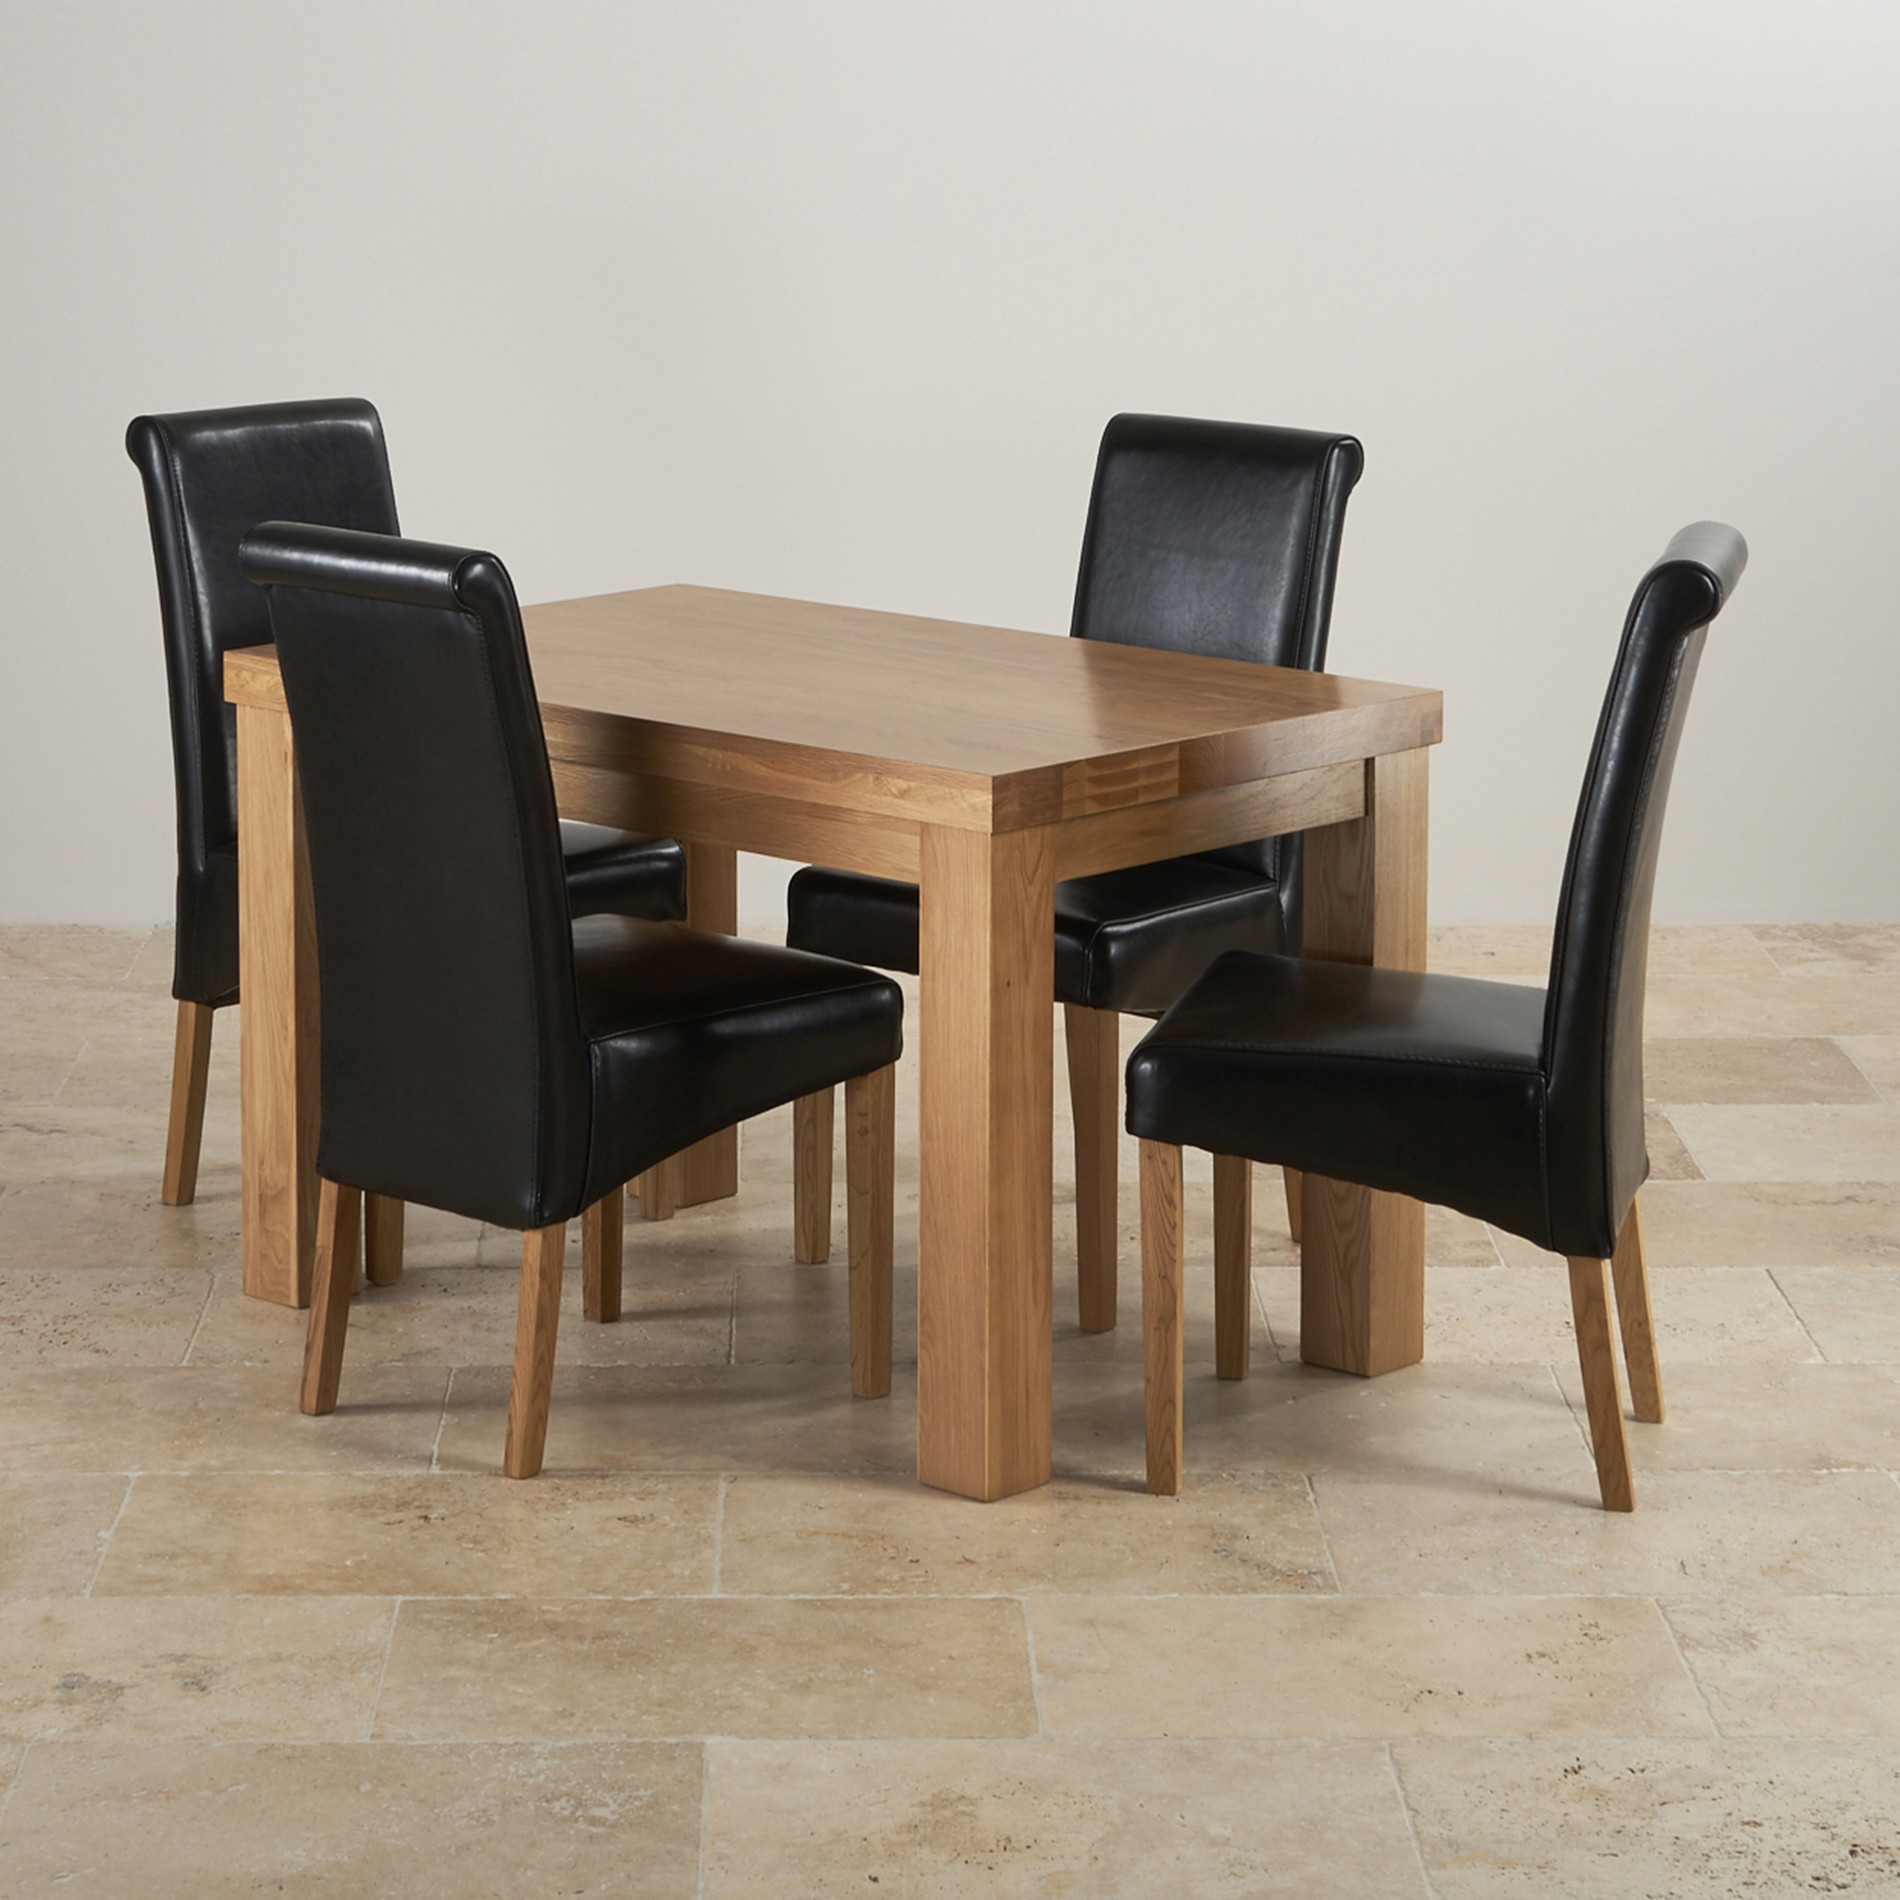 2 x 4 dining chairs anywhere chair cover etsy chunky 4ft solid oak table black leather scroll